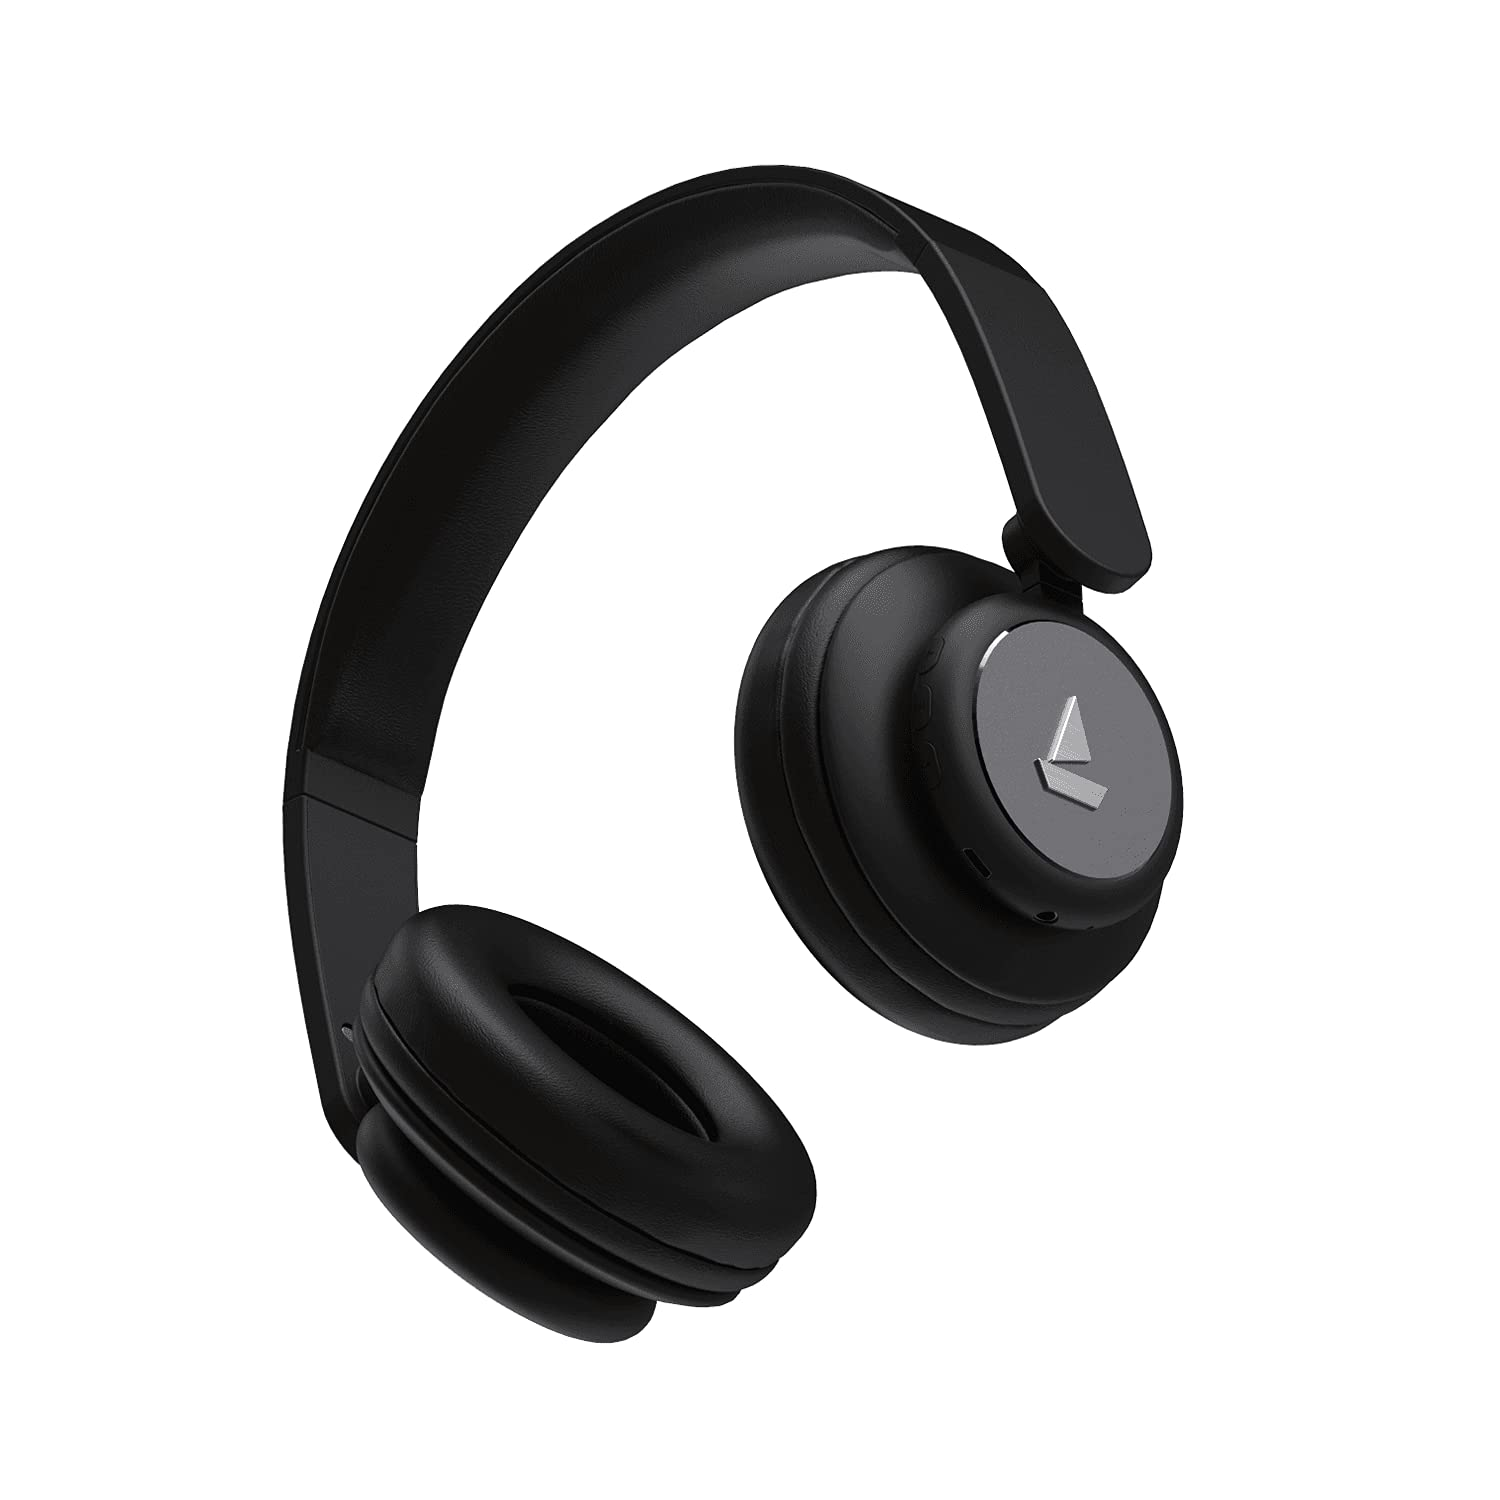 Upto 80% off on headphones & speakers | Starting from